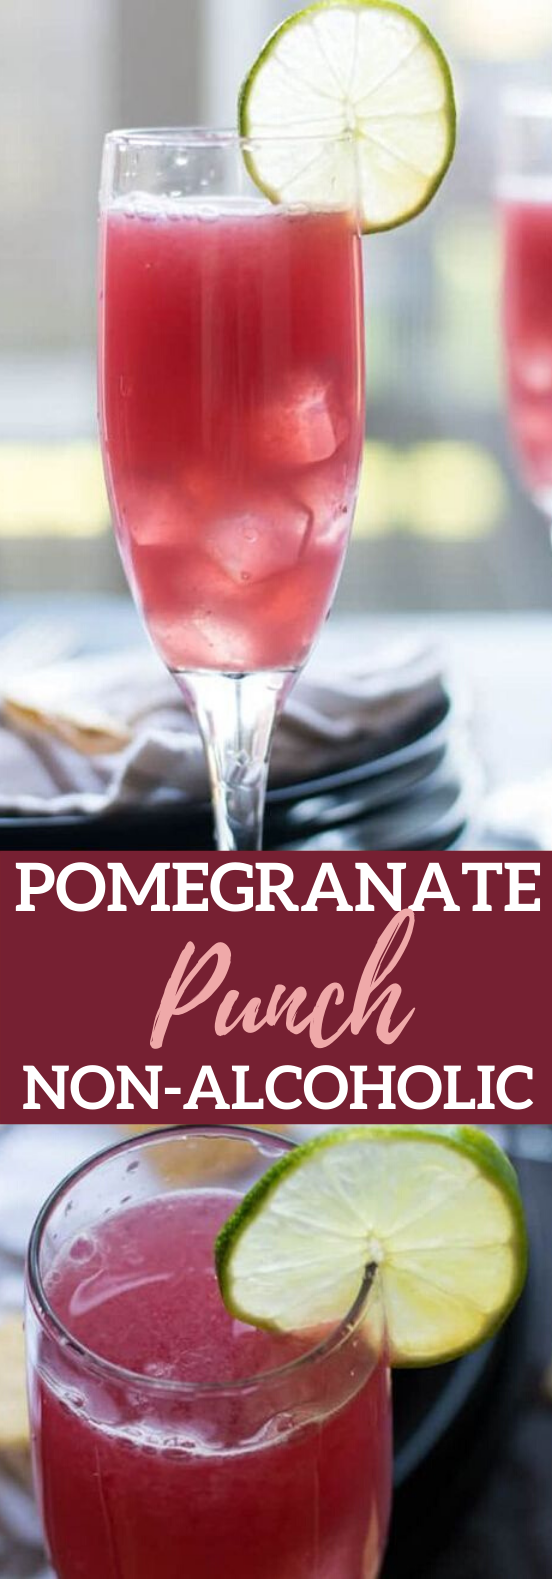 POMEGRANATE PUNCH #drinks #recipe #holiday #party #punch